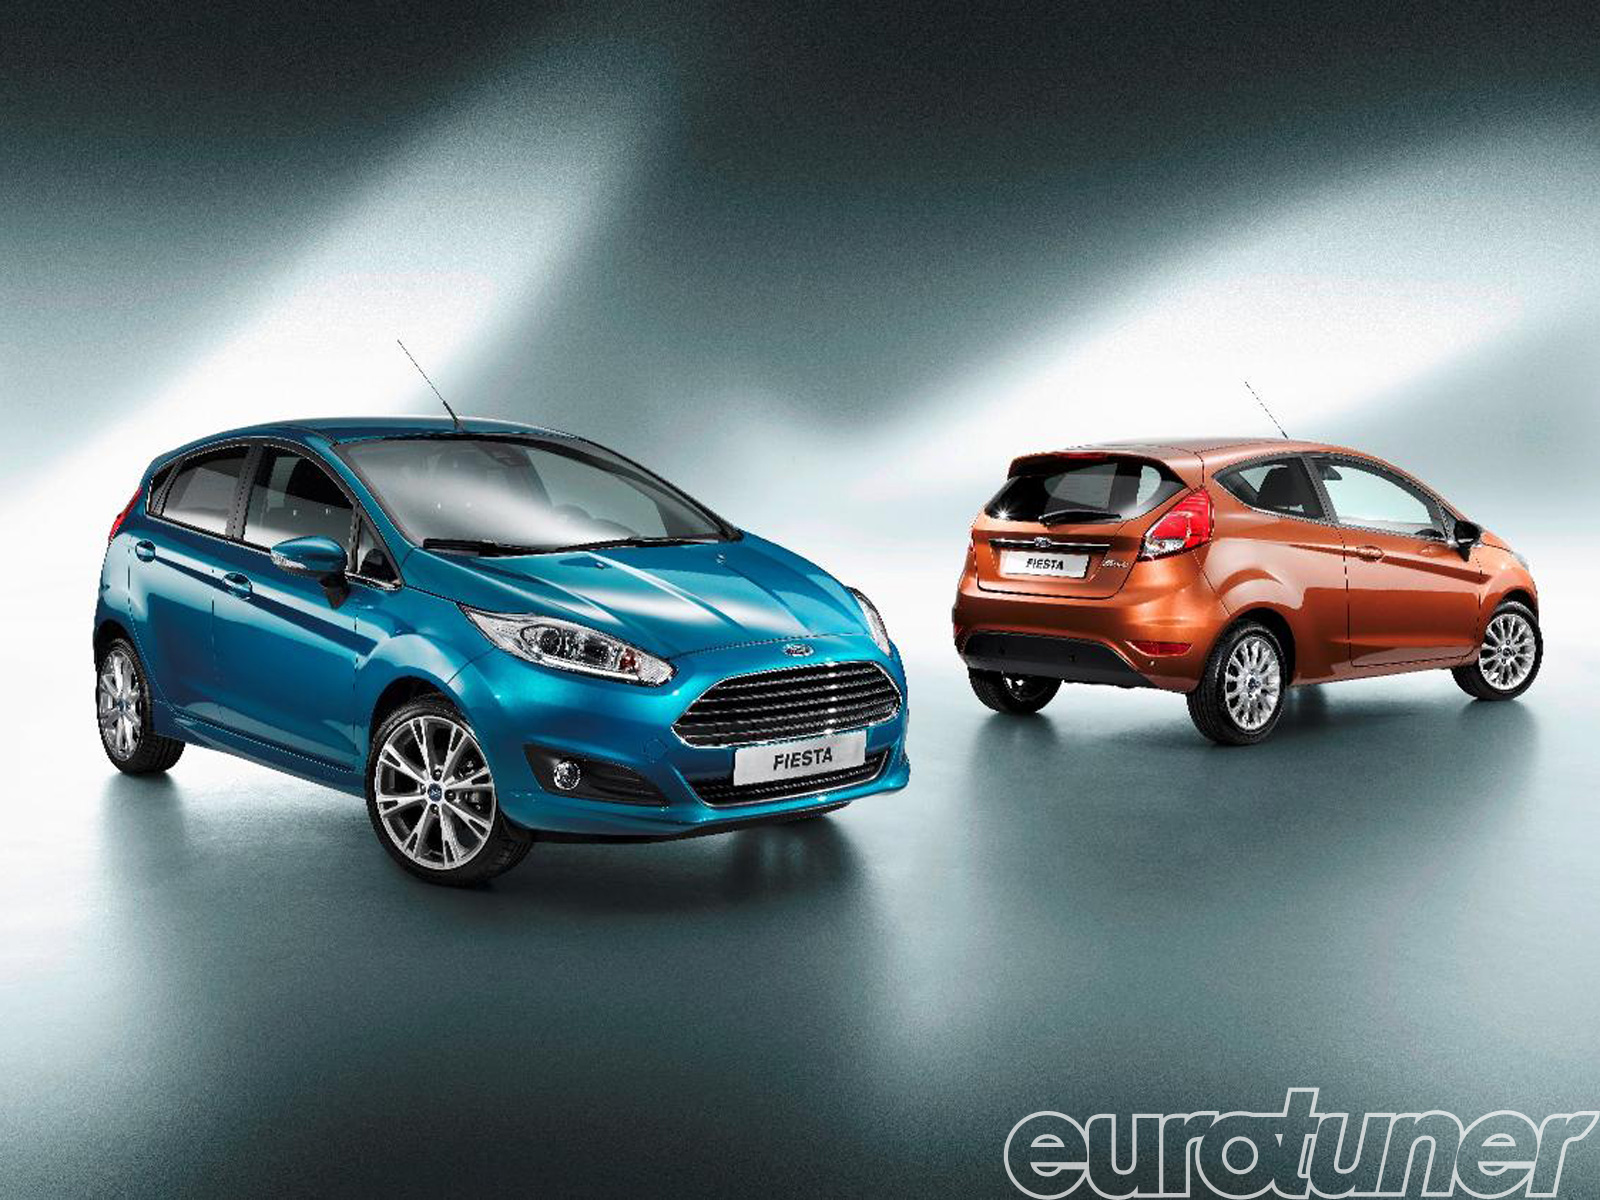 2013 Ford Fiesta Uk Facelift Web Exclusive Eurotuner Magazine